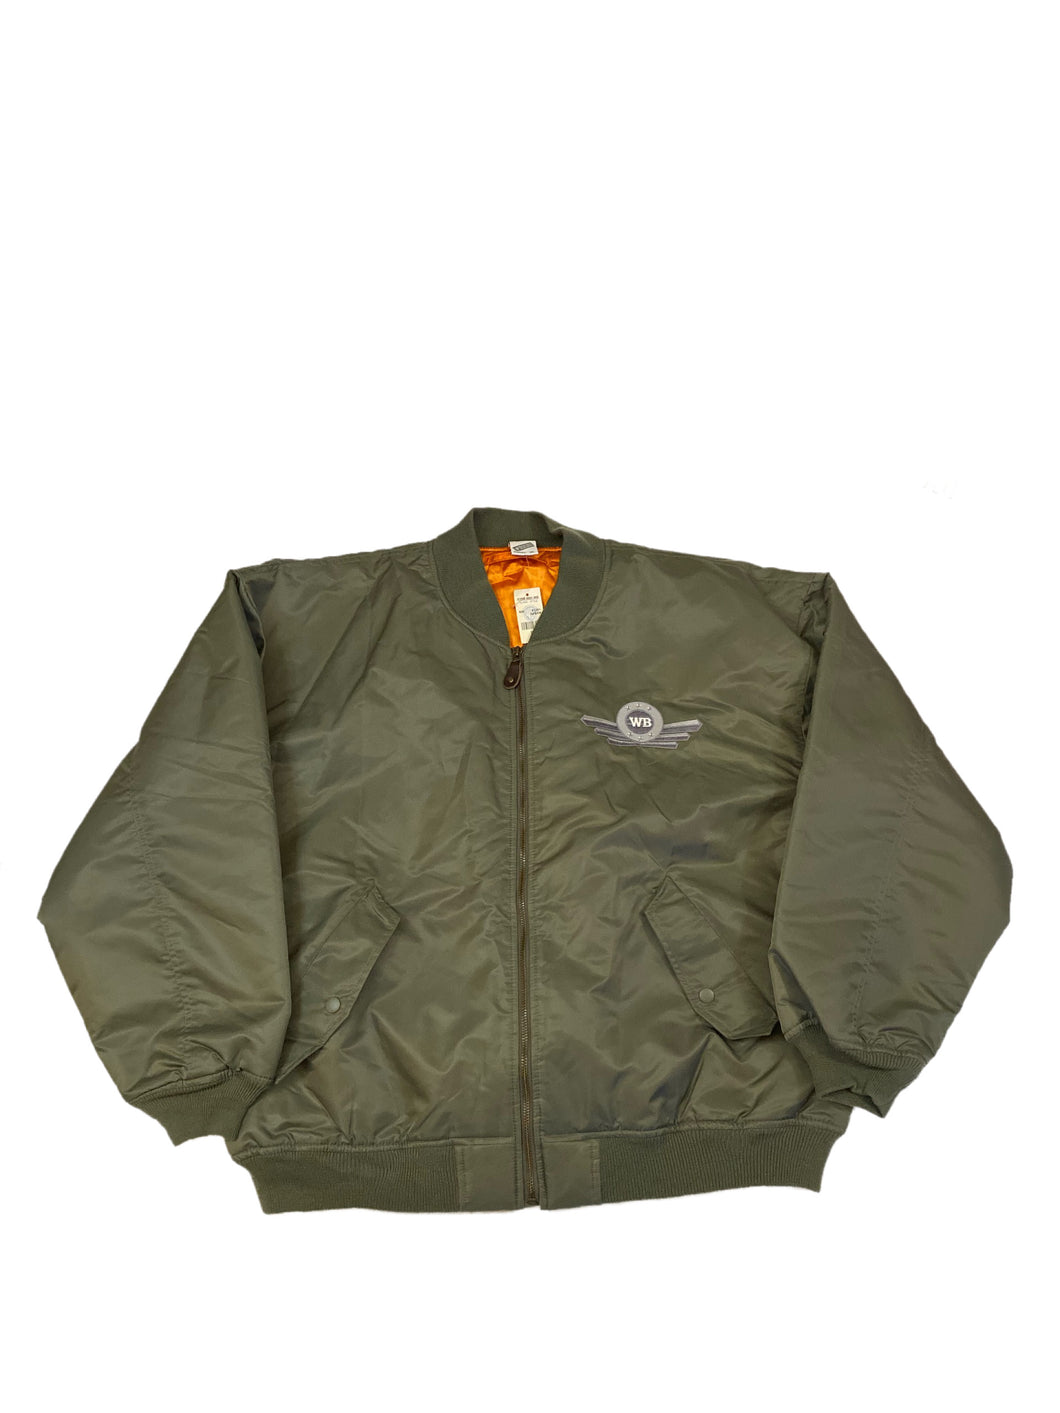 Looney Tunes Flight Jacket